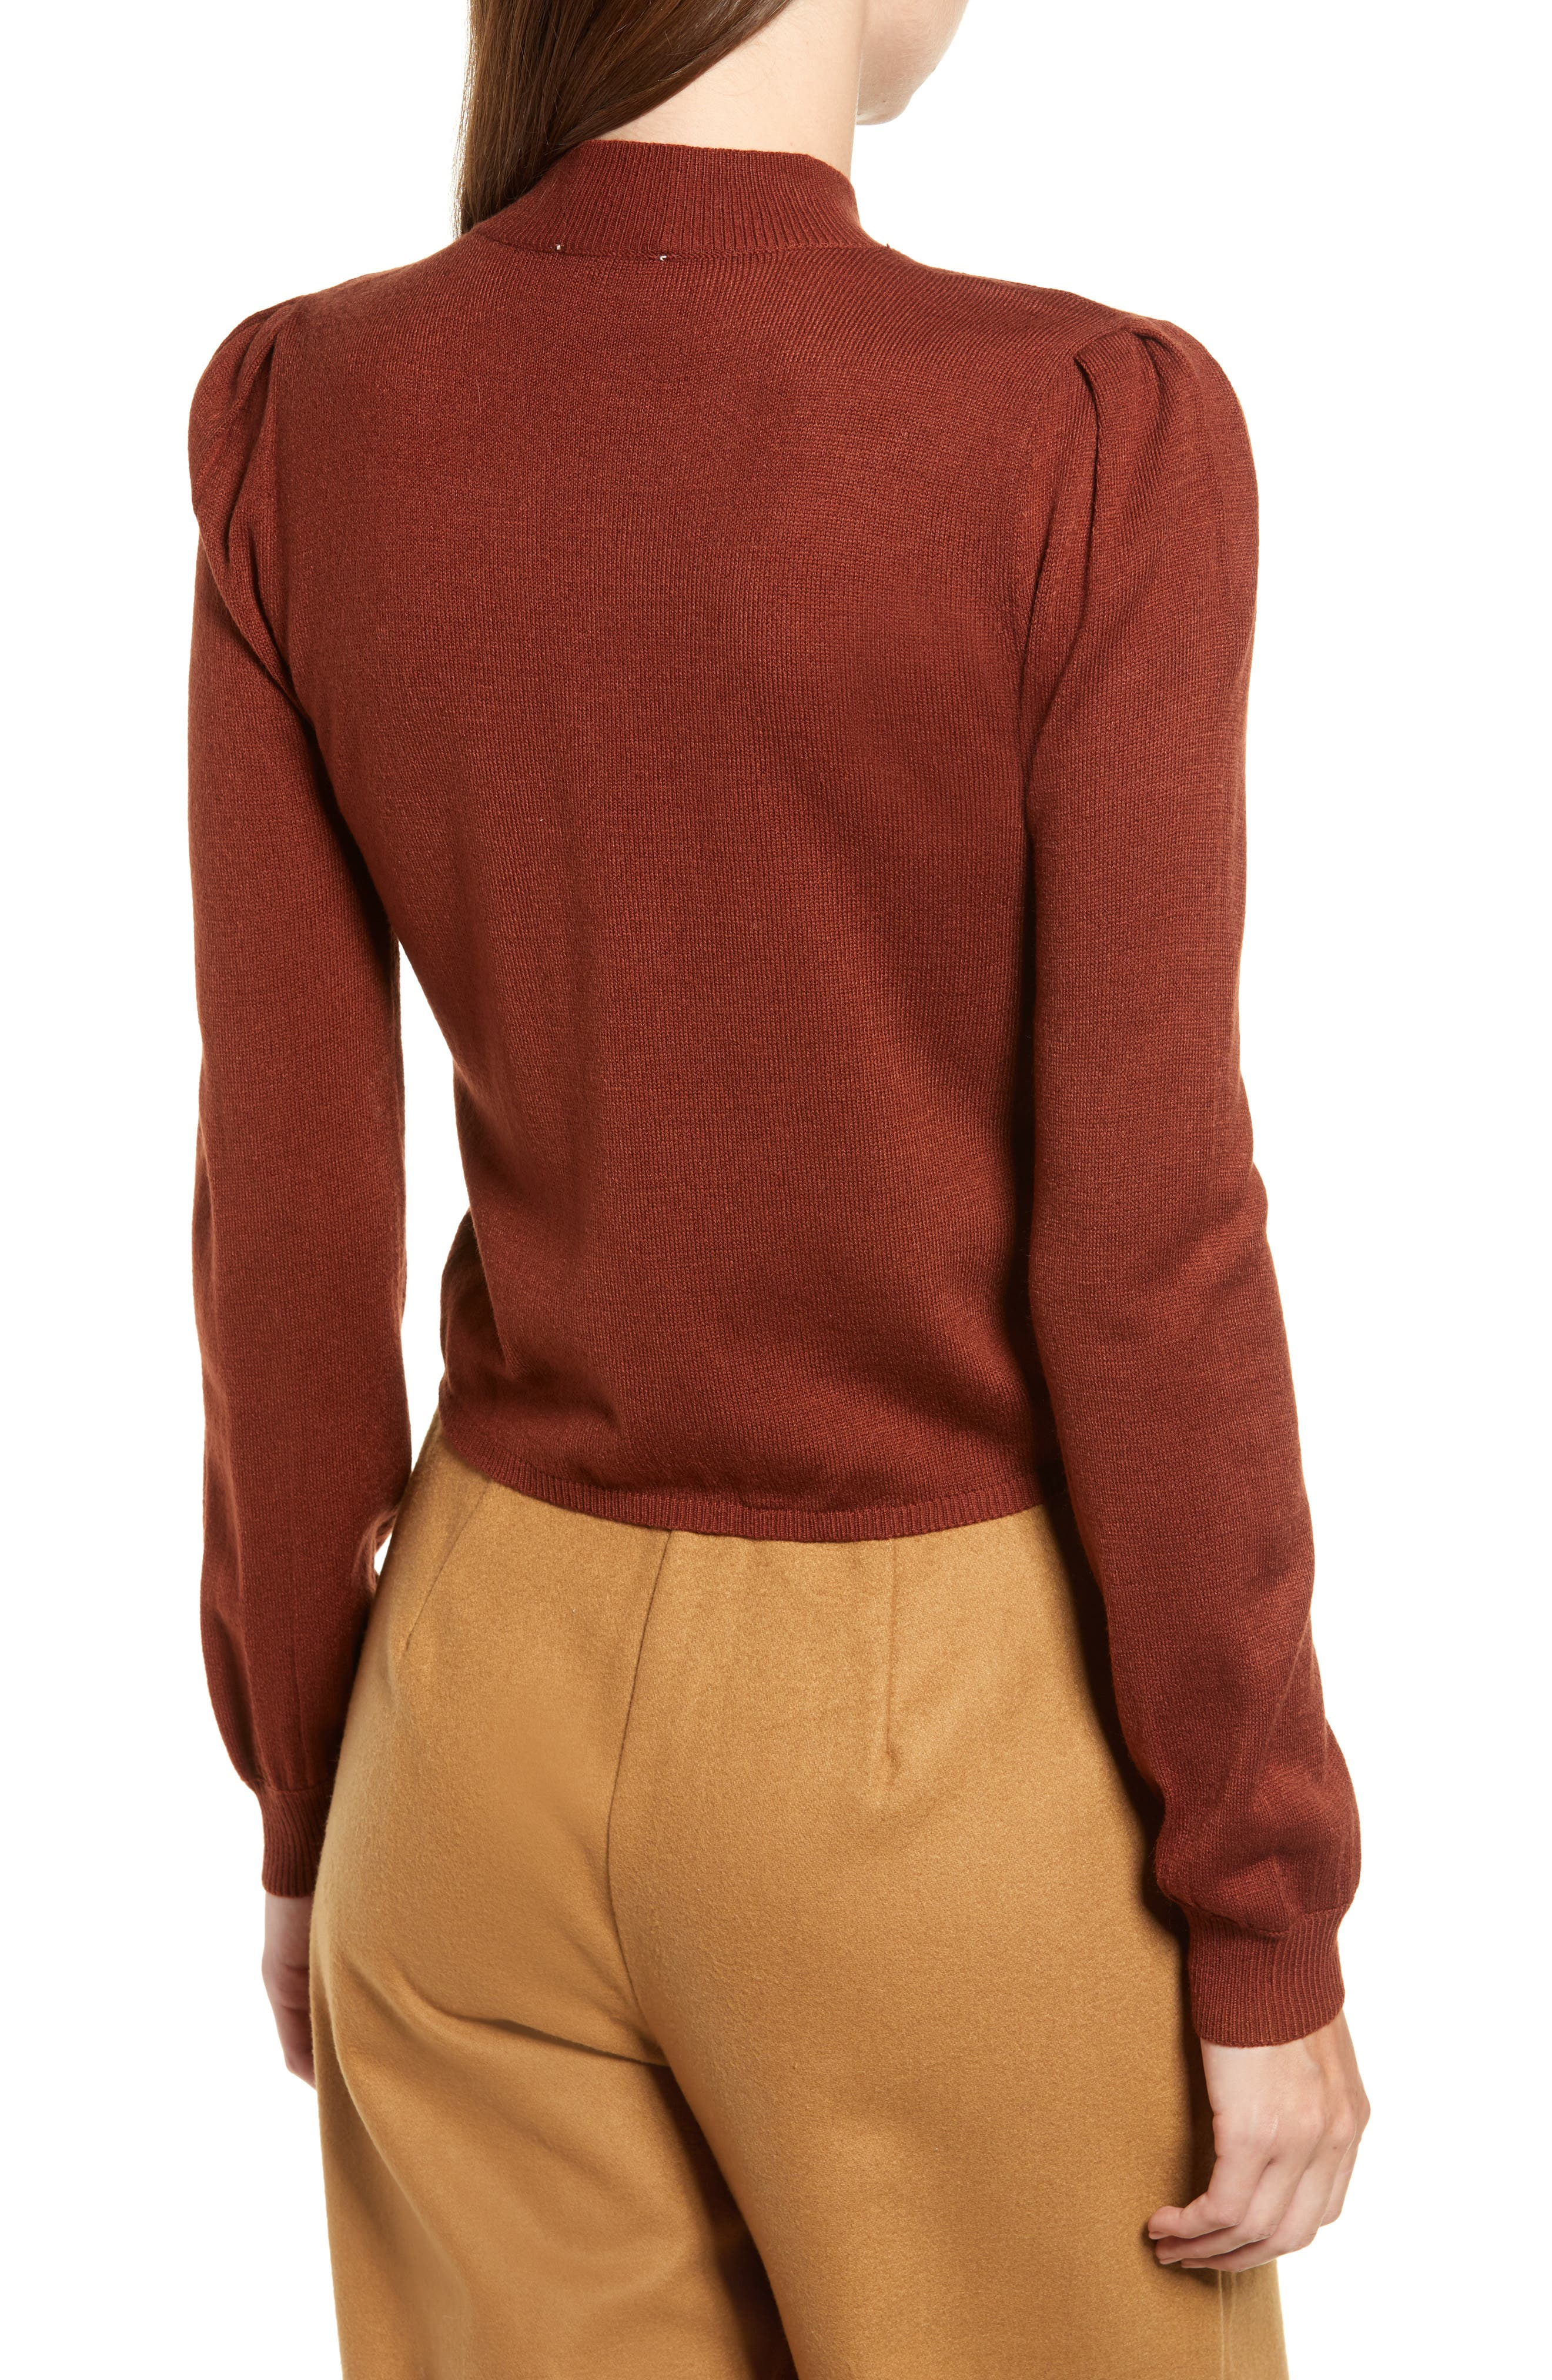 Chriselle Lim Madison Ruched Sweater,                             Alternate thumbnail 3, color,                             RUST